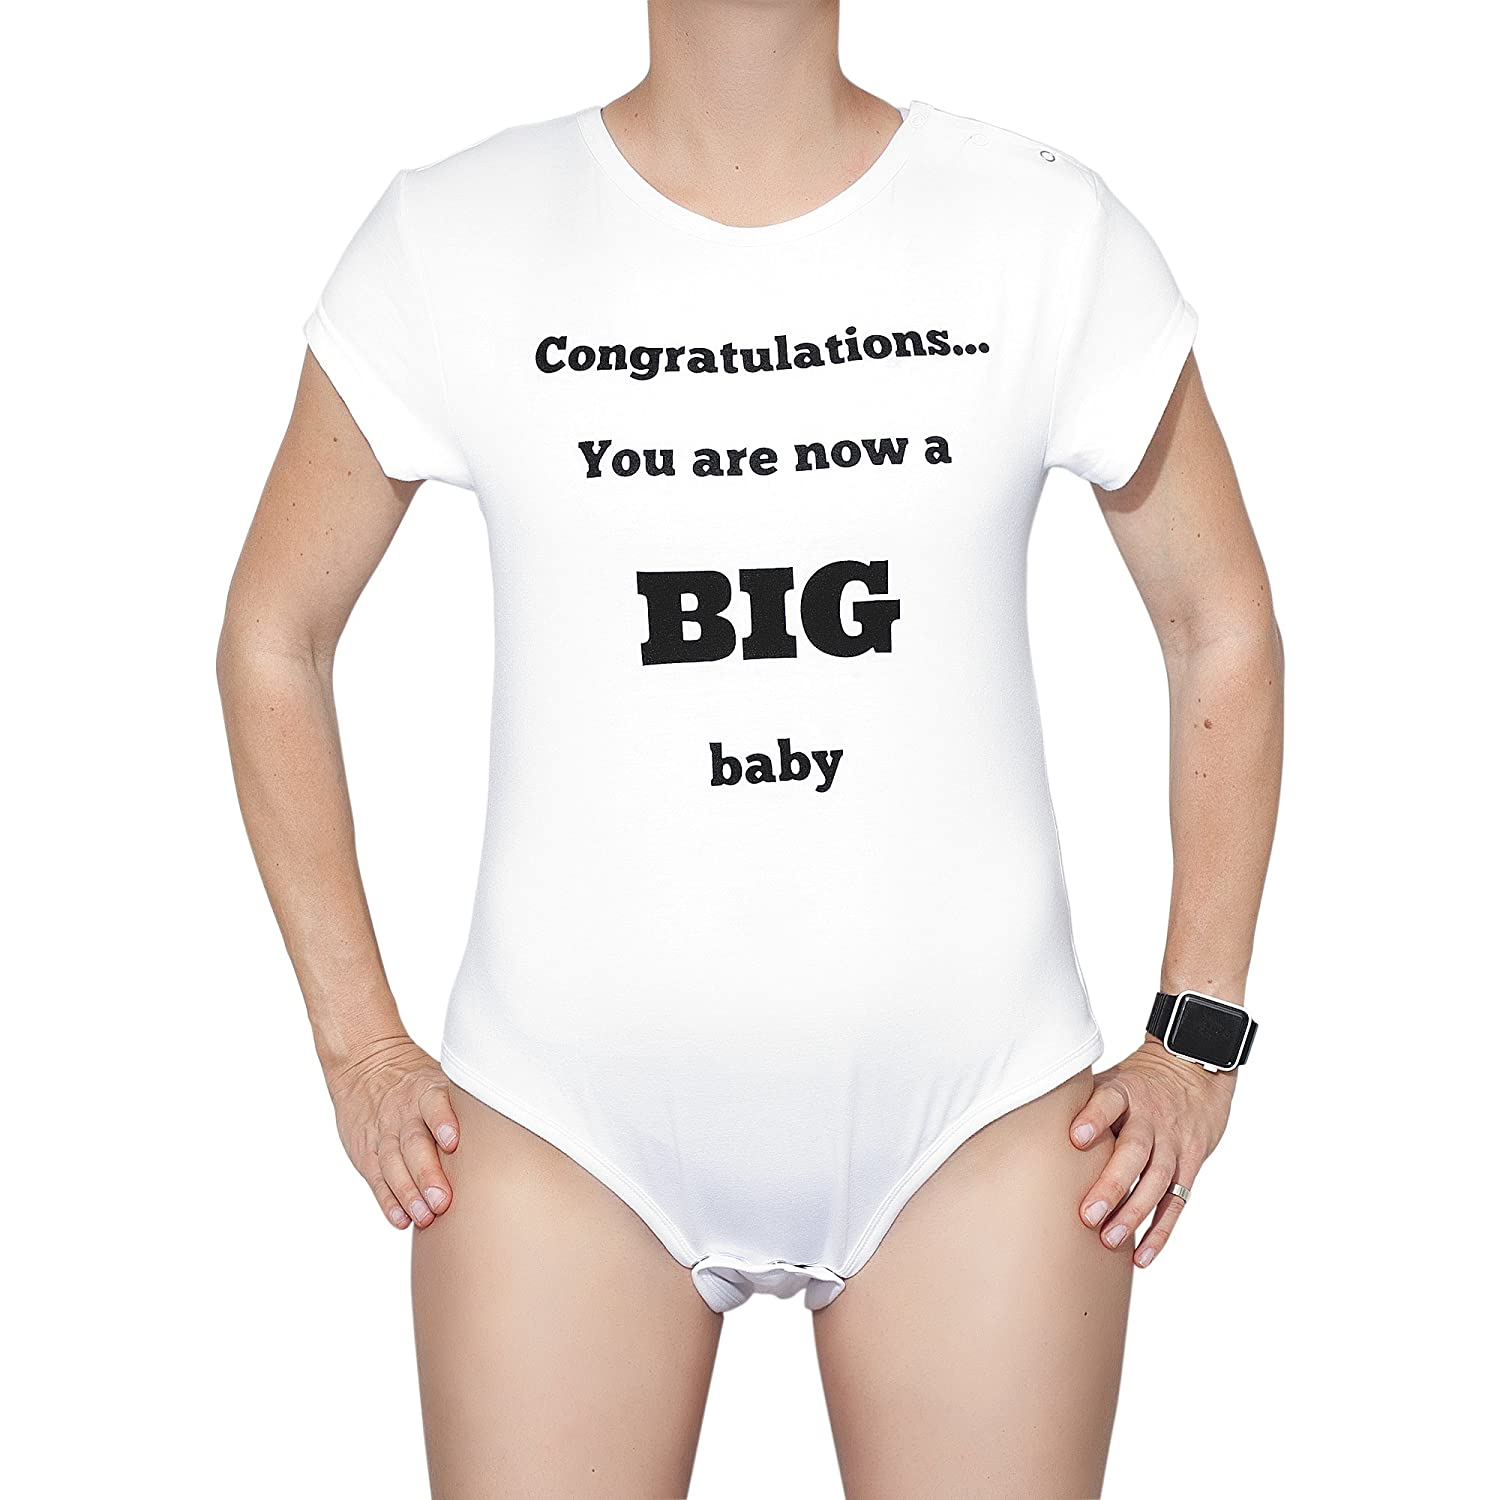 Amazon Funny Birthday Gifts For Women Or Men Unisex Adult Baby Onsie Gag Gift Crotch Shirt Clothing